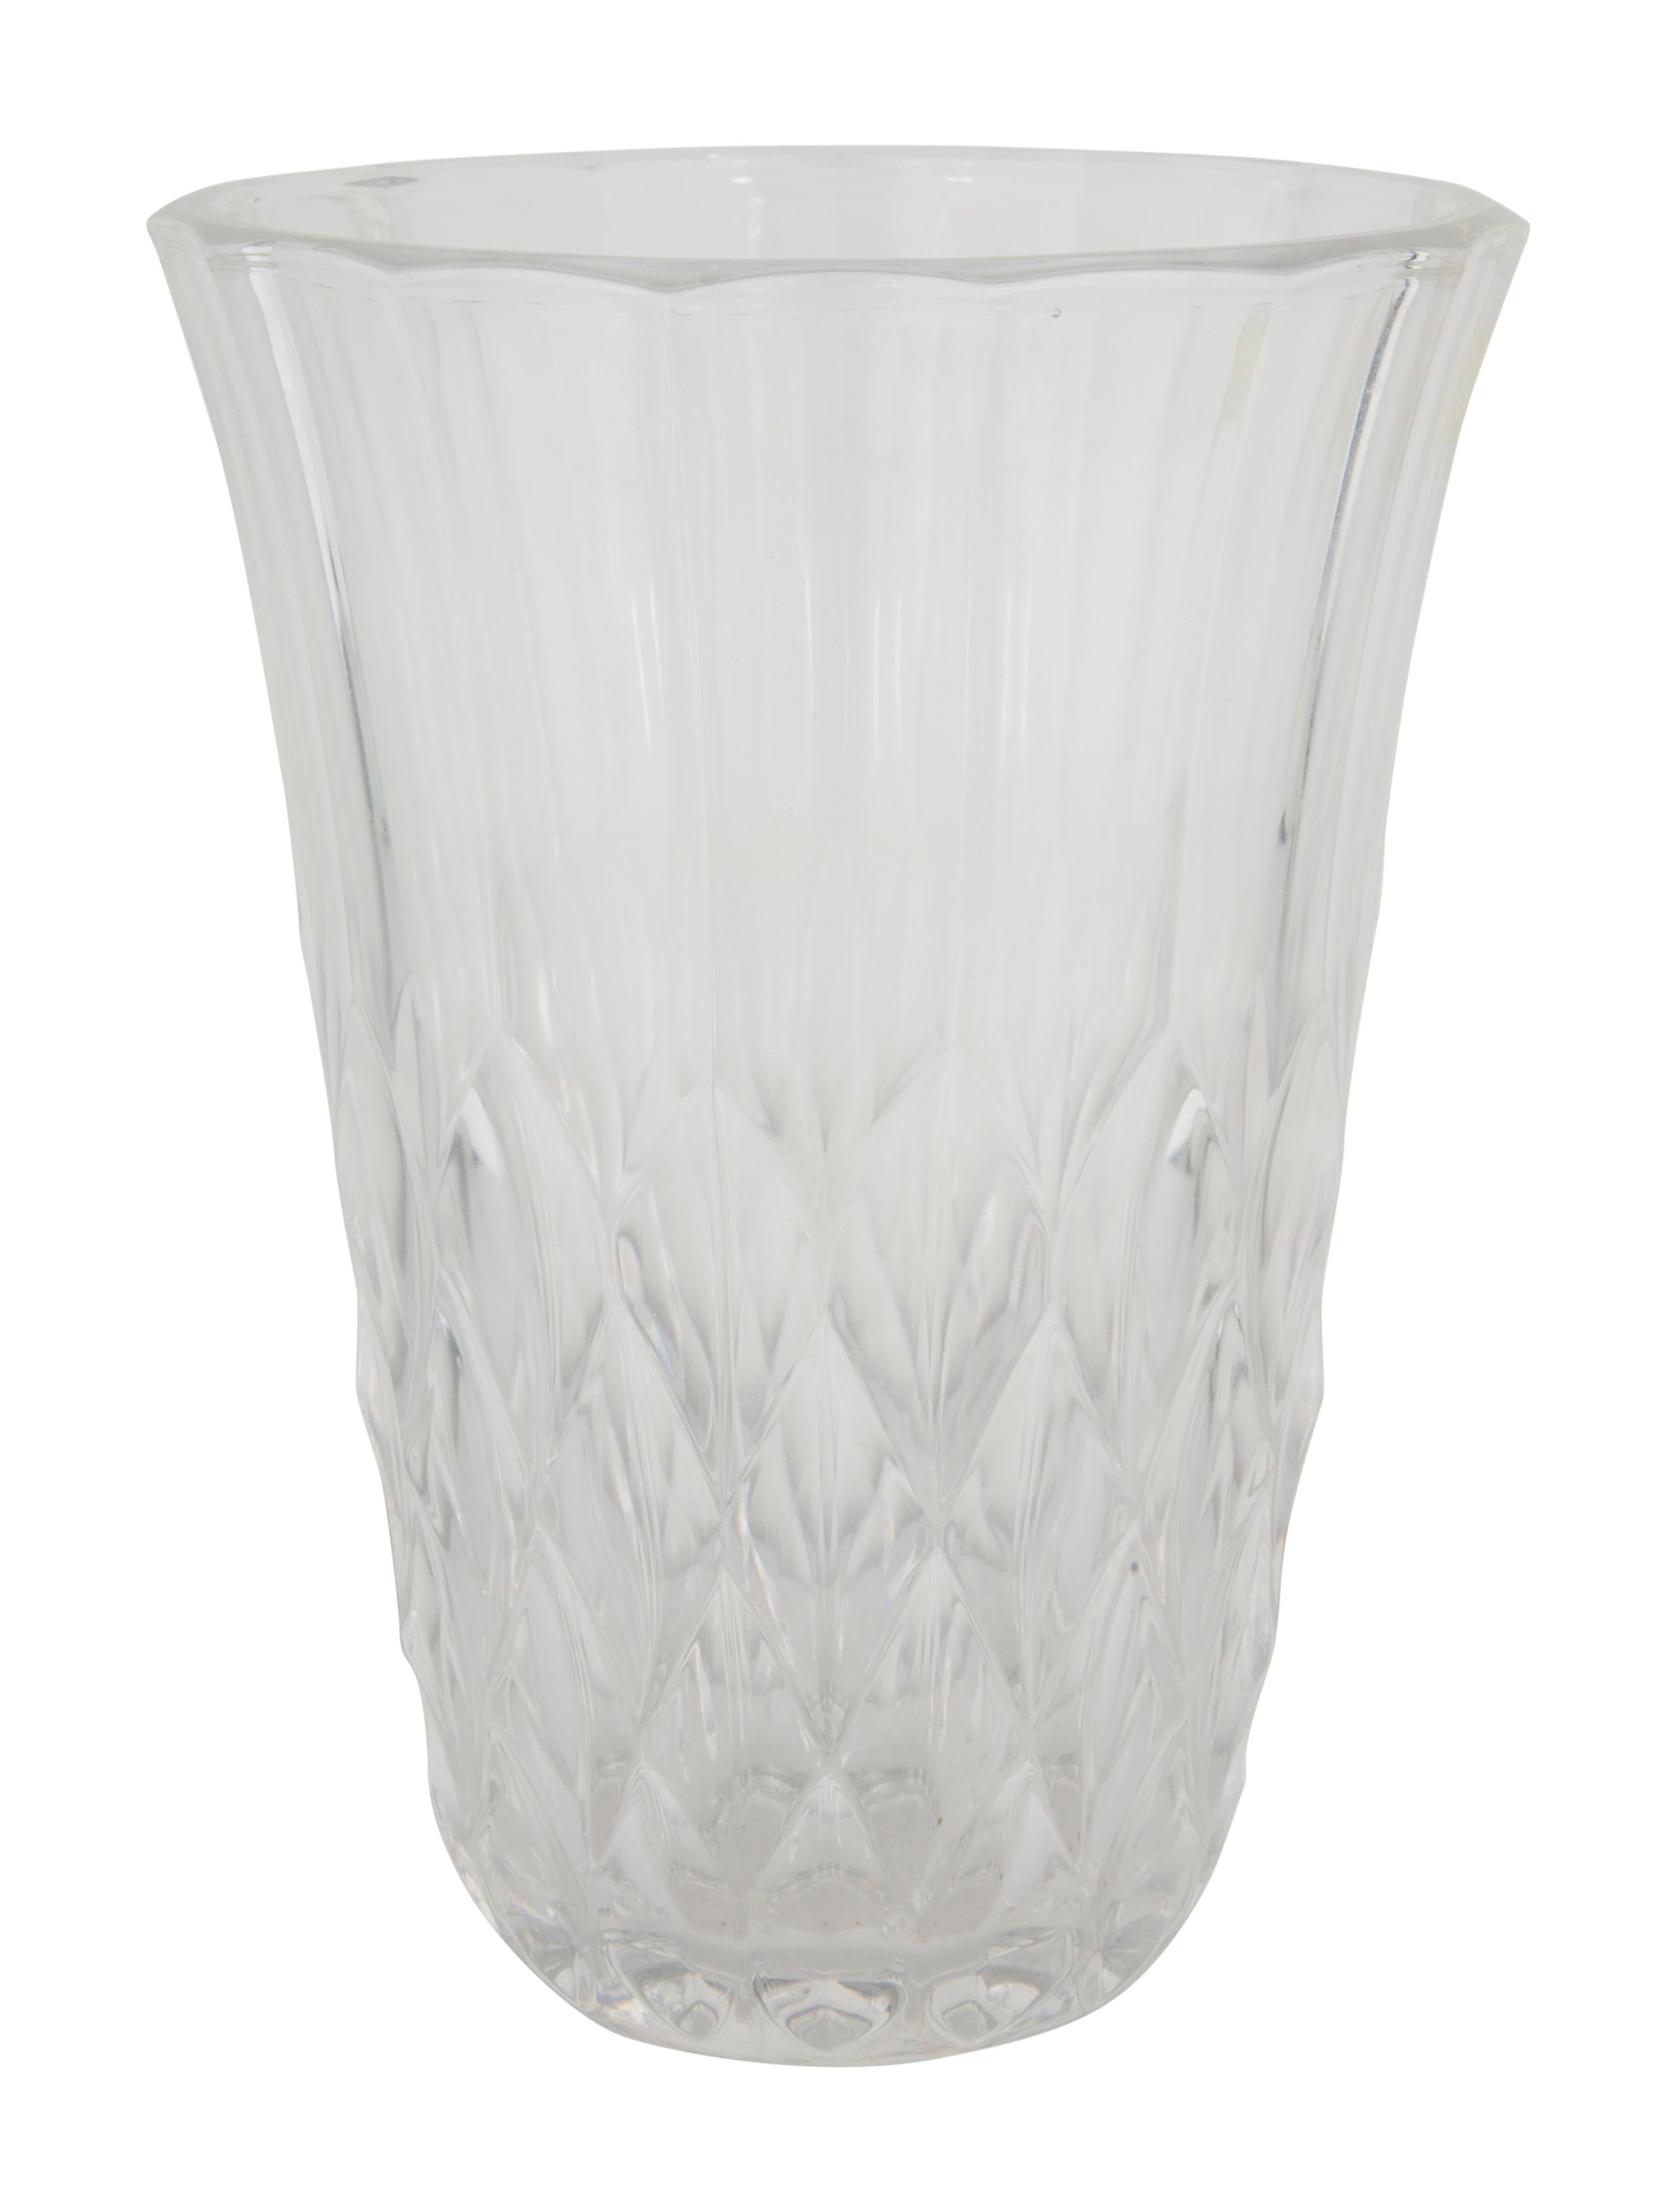 Val st lambert crystal imperial flower vase decor and for Imperial home decor